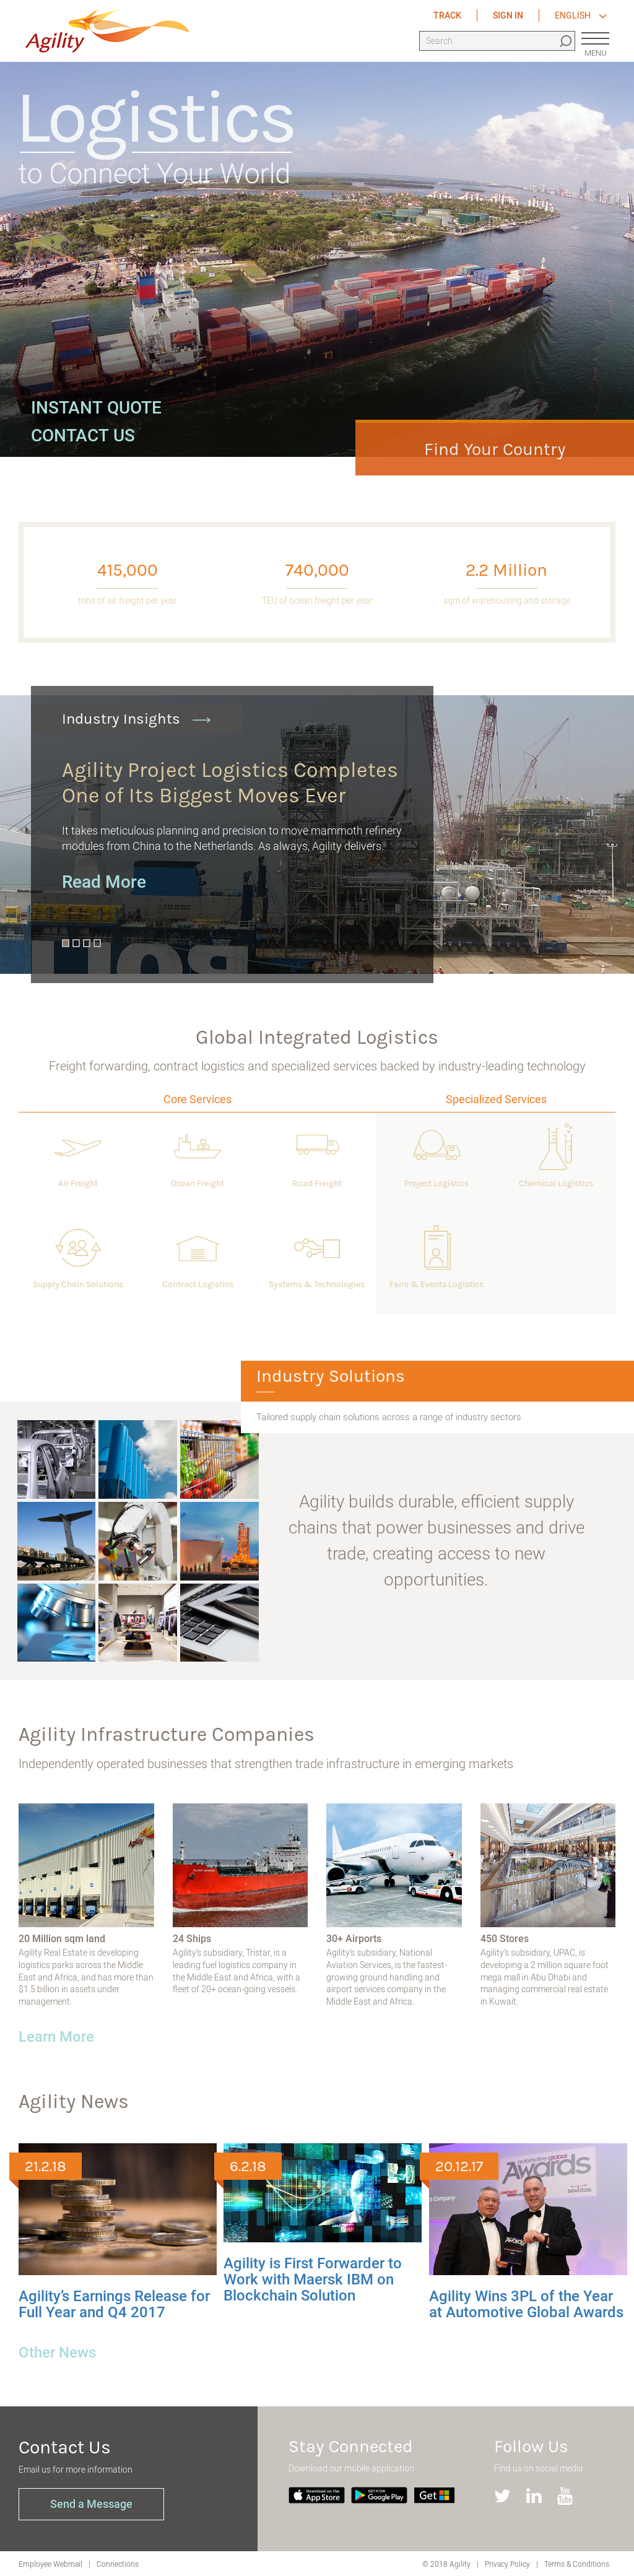 Owler Reports - Agility Blog Shipa Freight Named